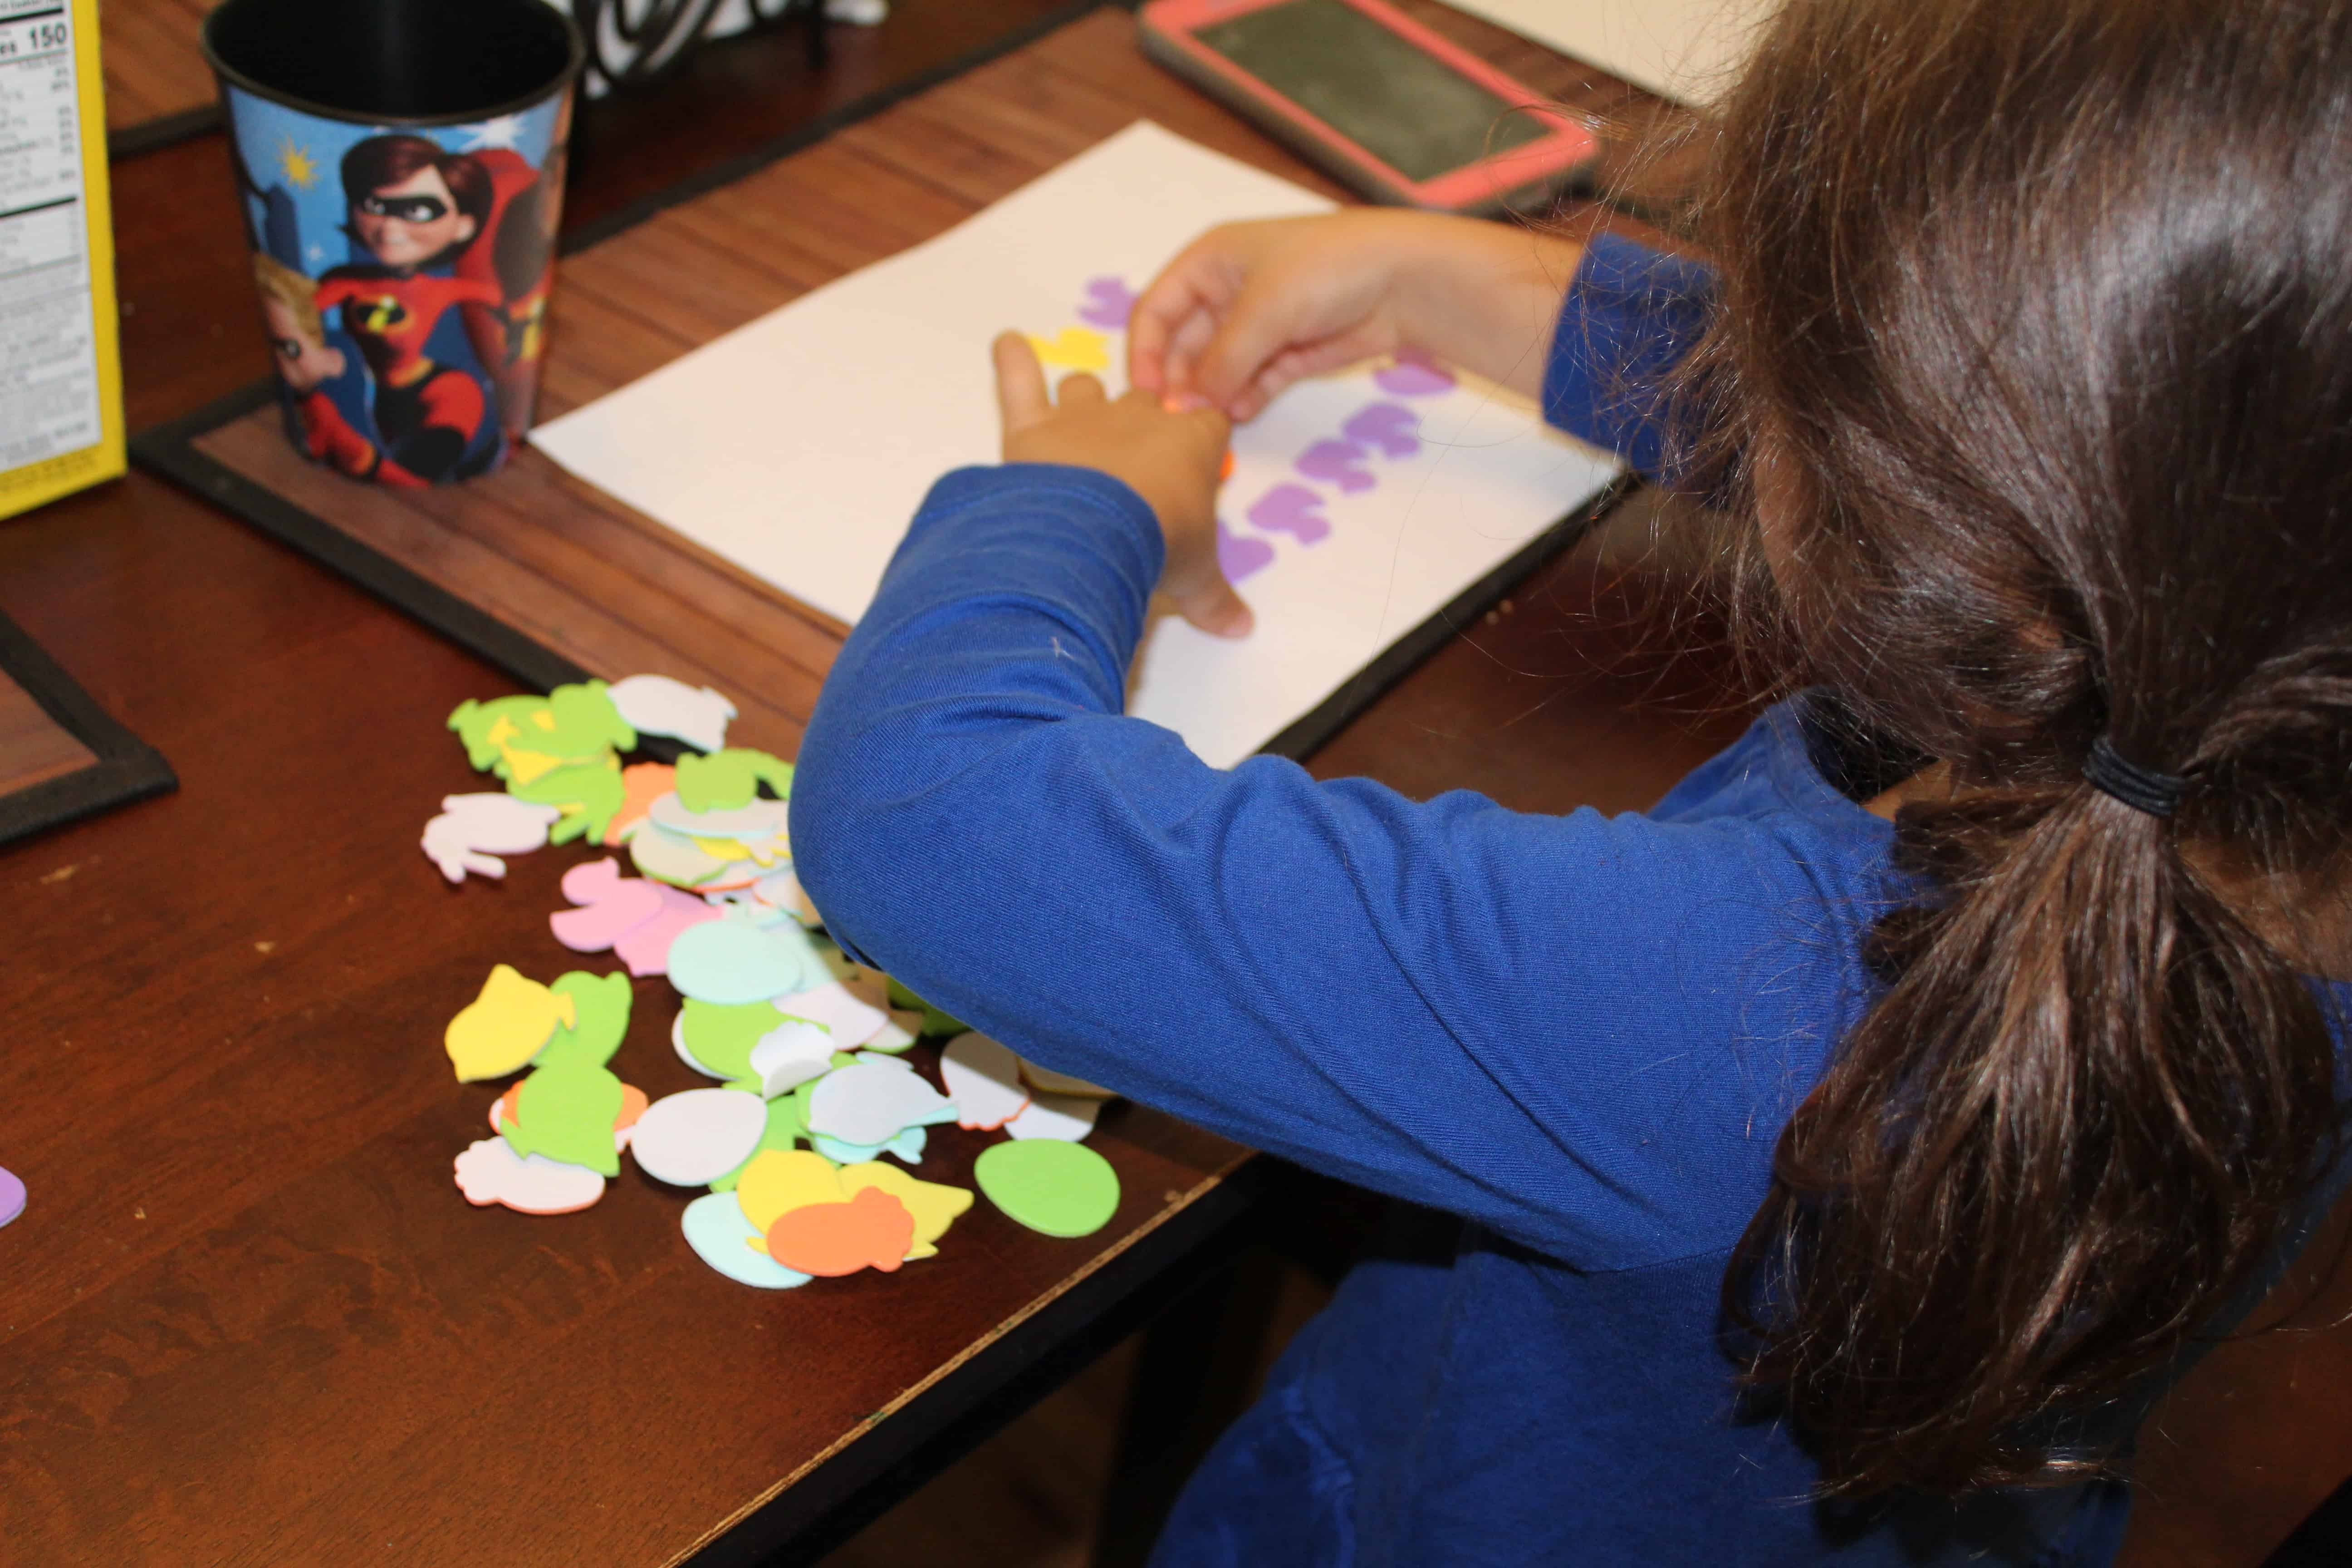 Child using foam stickers on white paper.